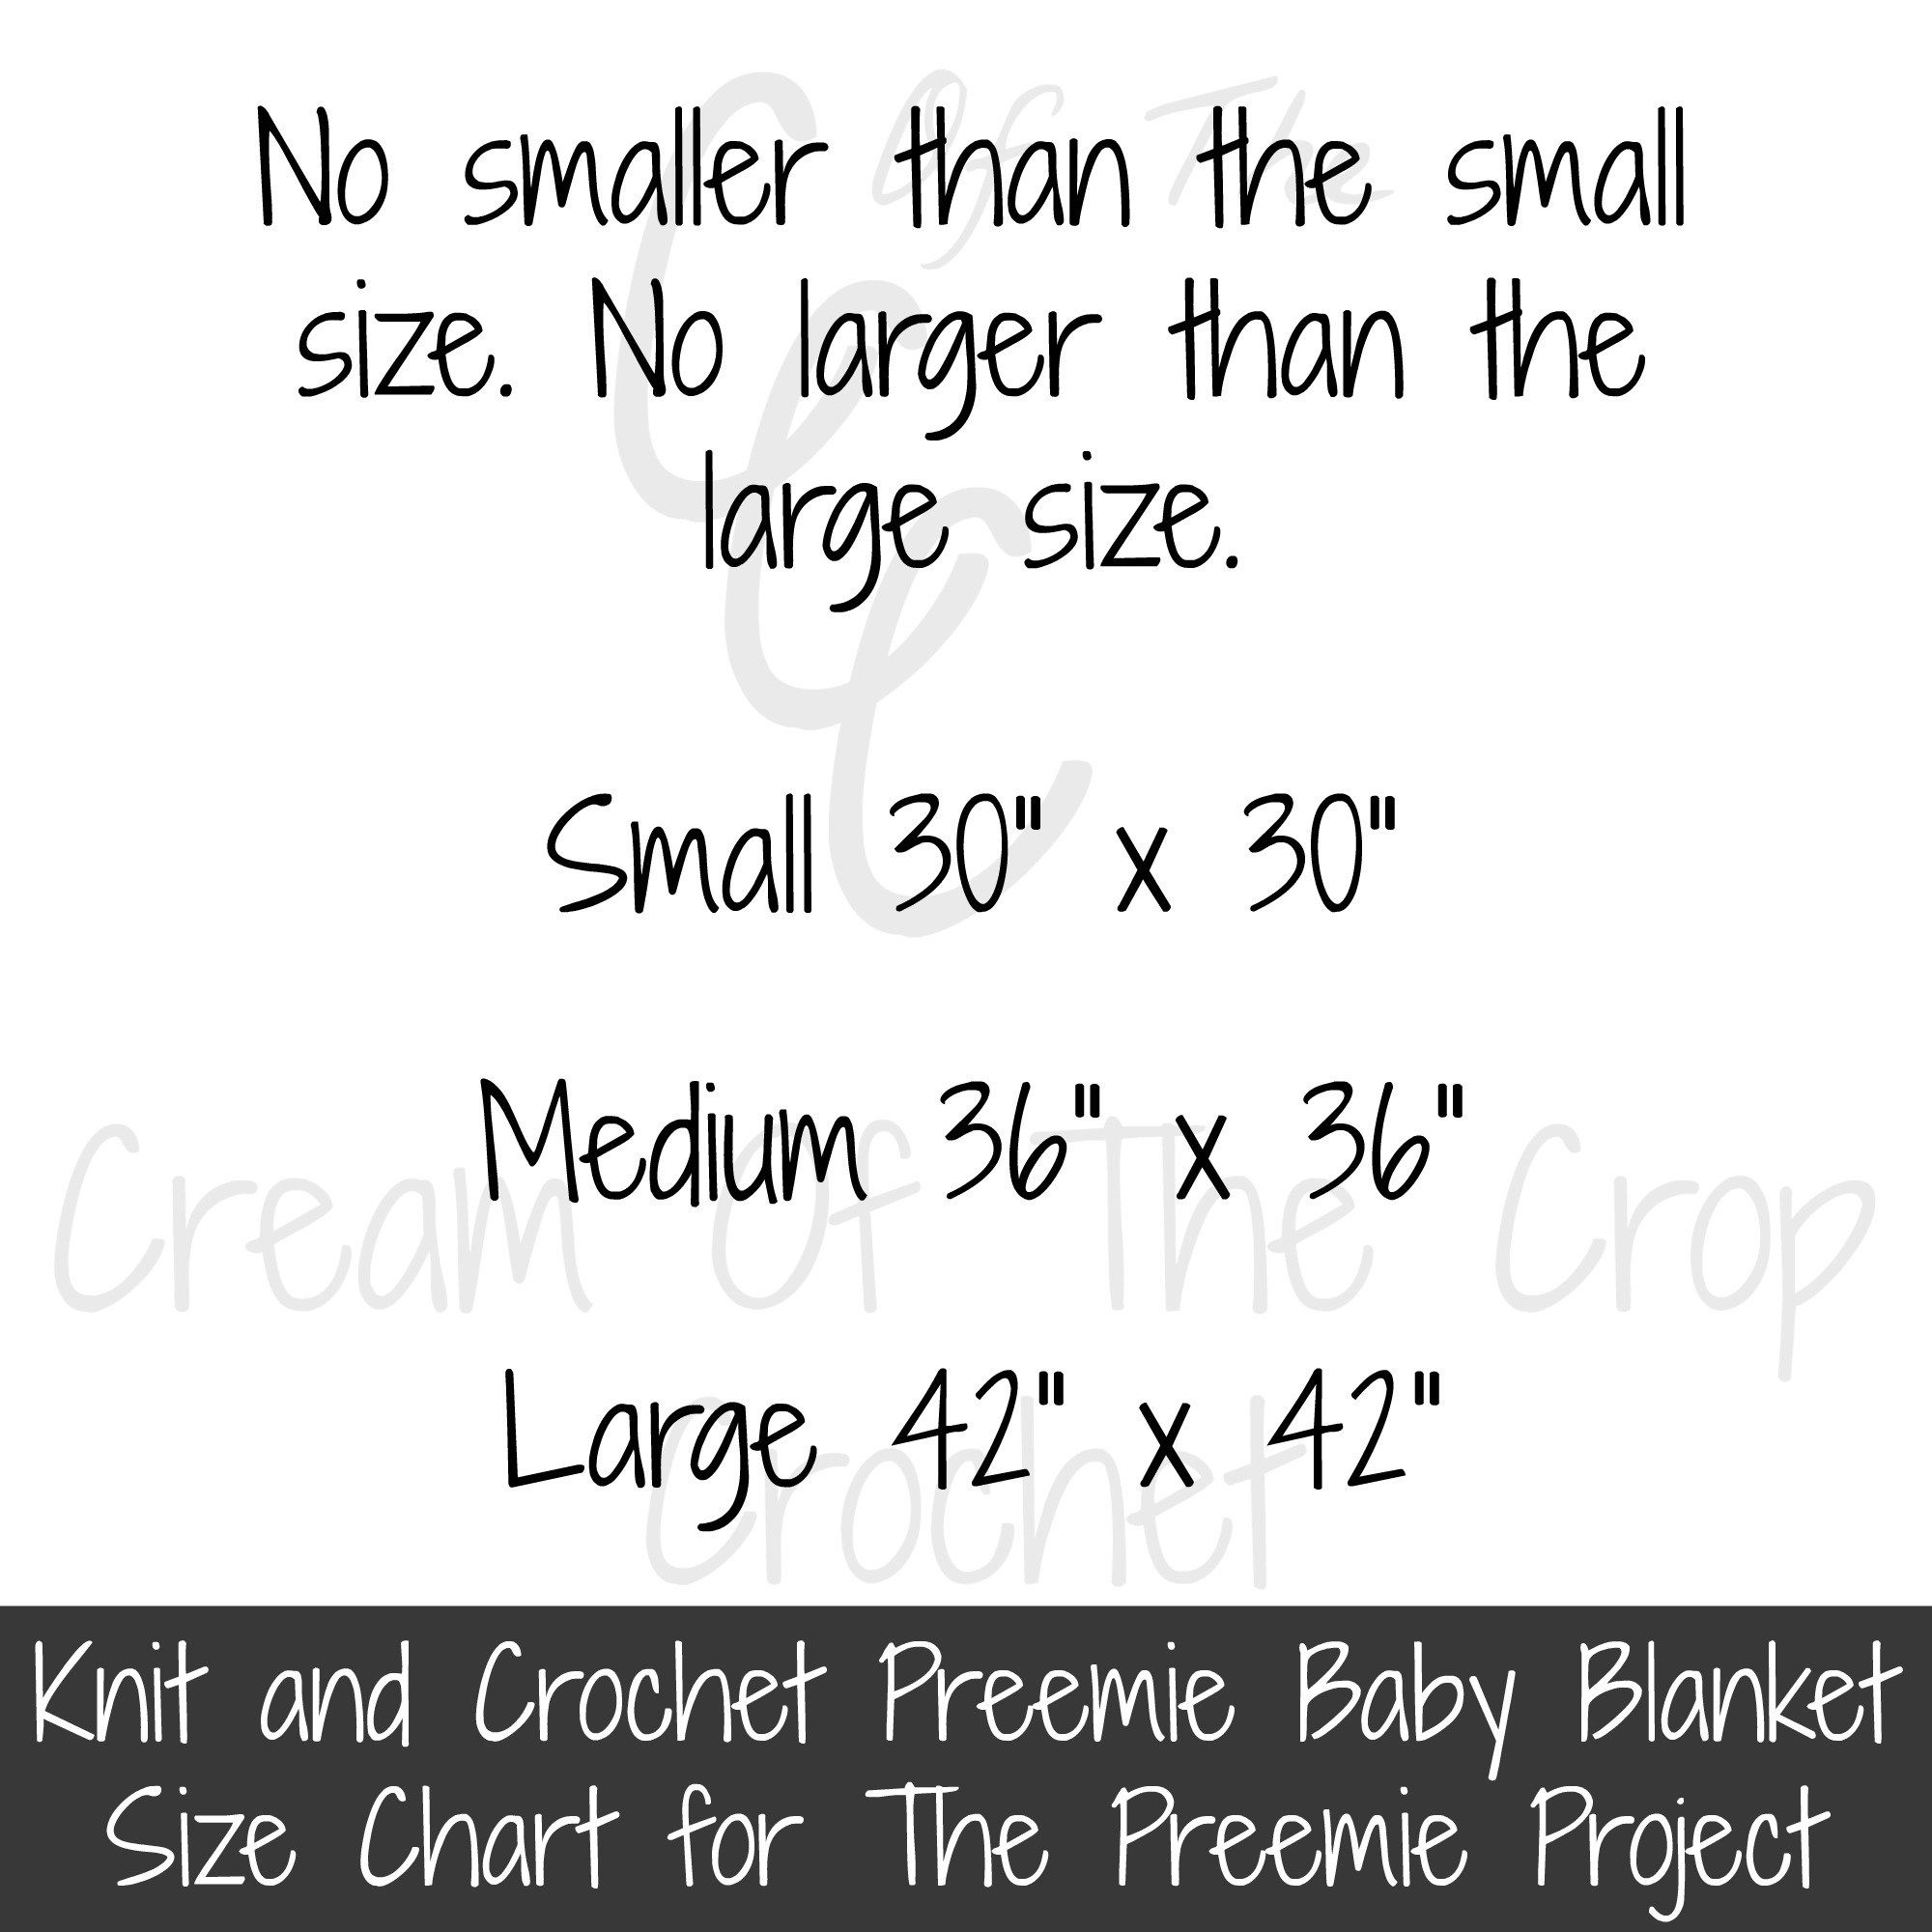 The Preemie Project Blanket Size Chart